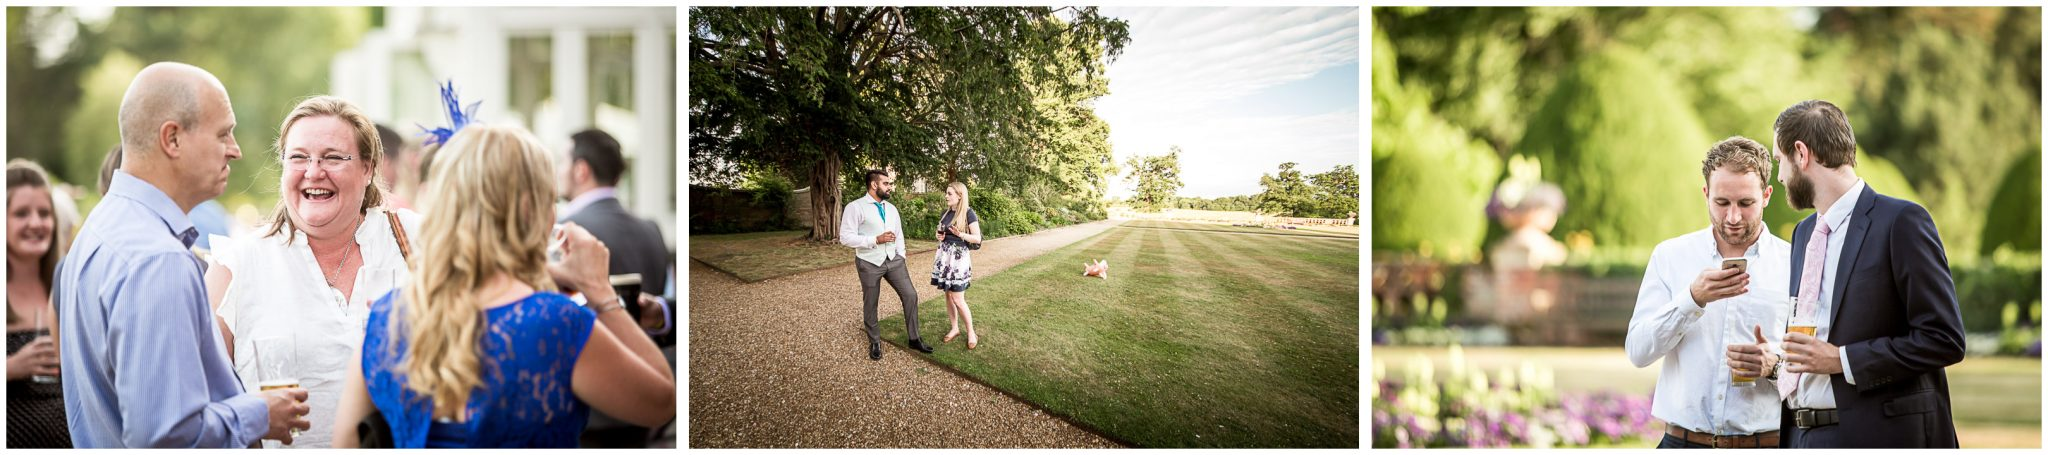 Guests relax in the grounds of the Elvetham wedding venue after the wedding breakfast